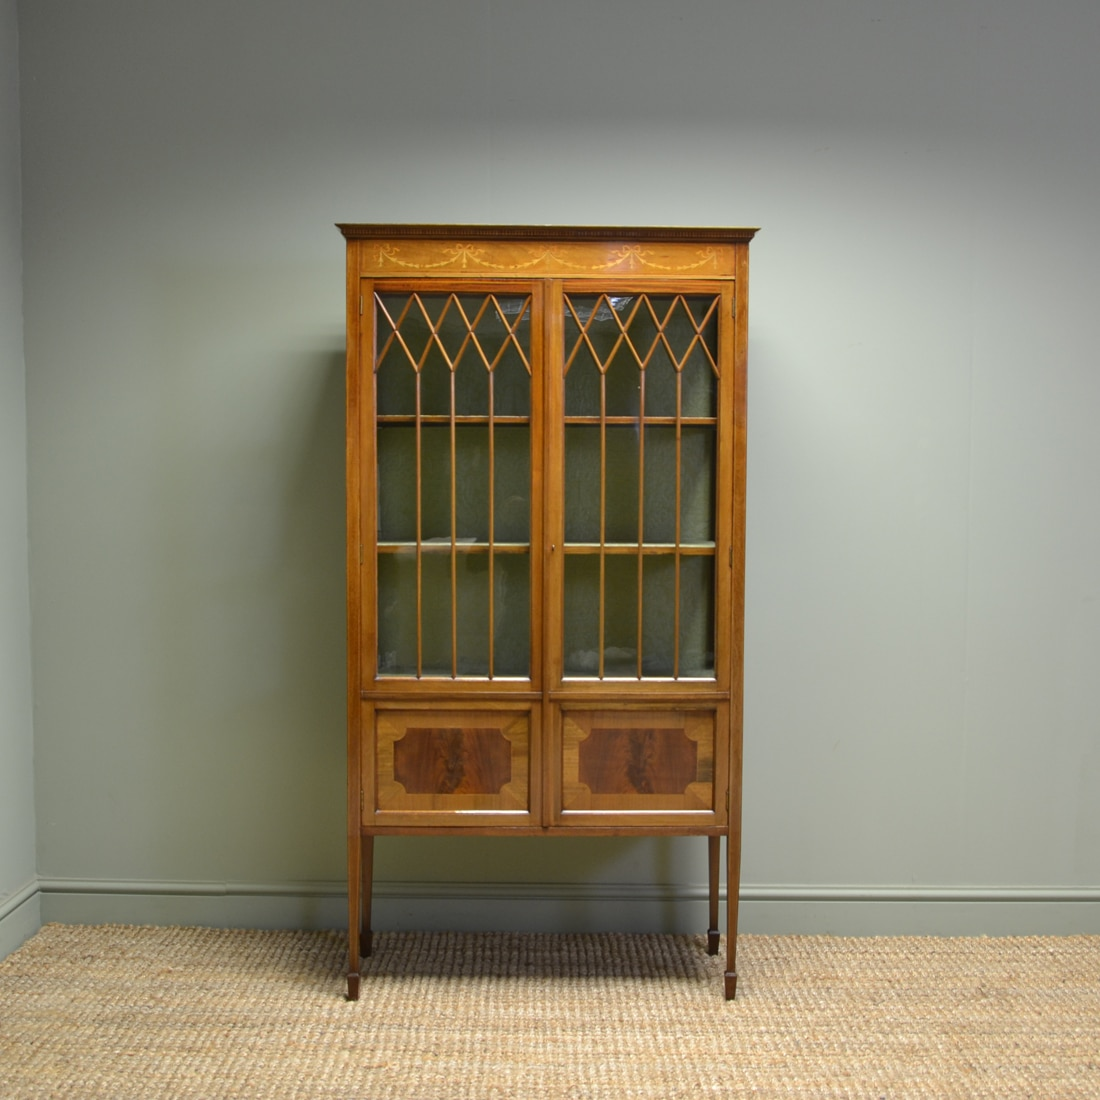 Antique display cabinets uk antique furniture for Antique display cabinet